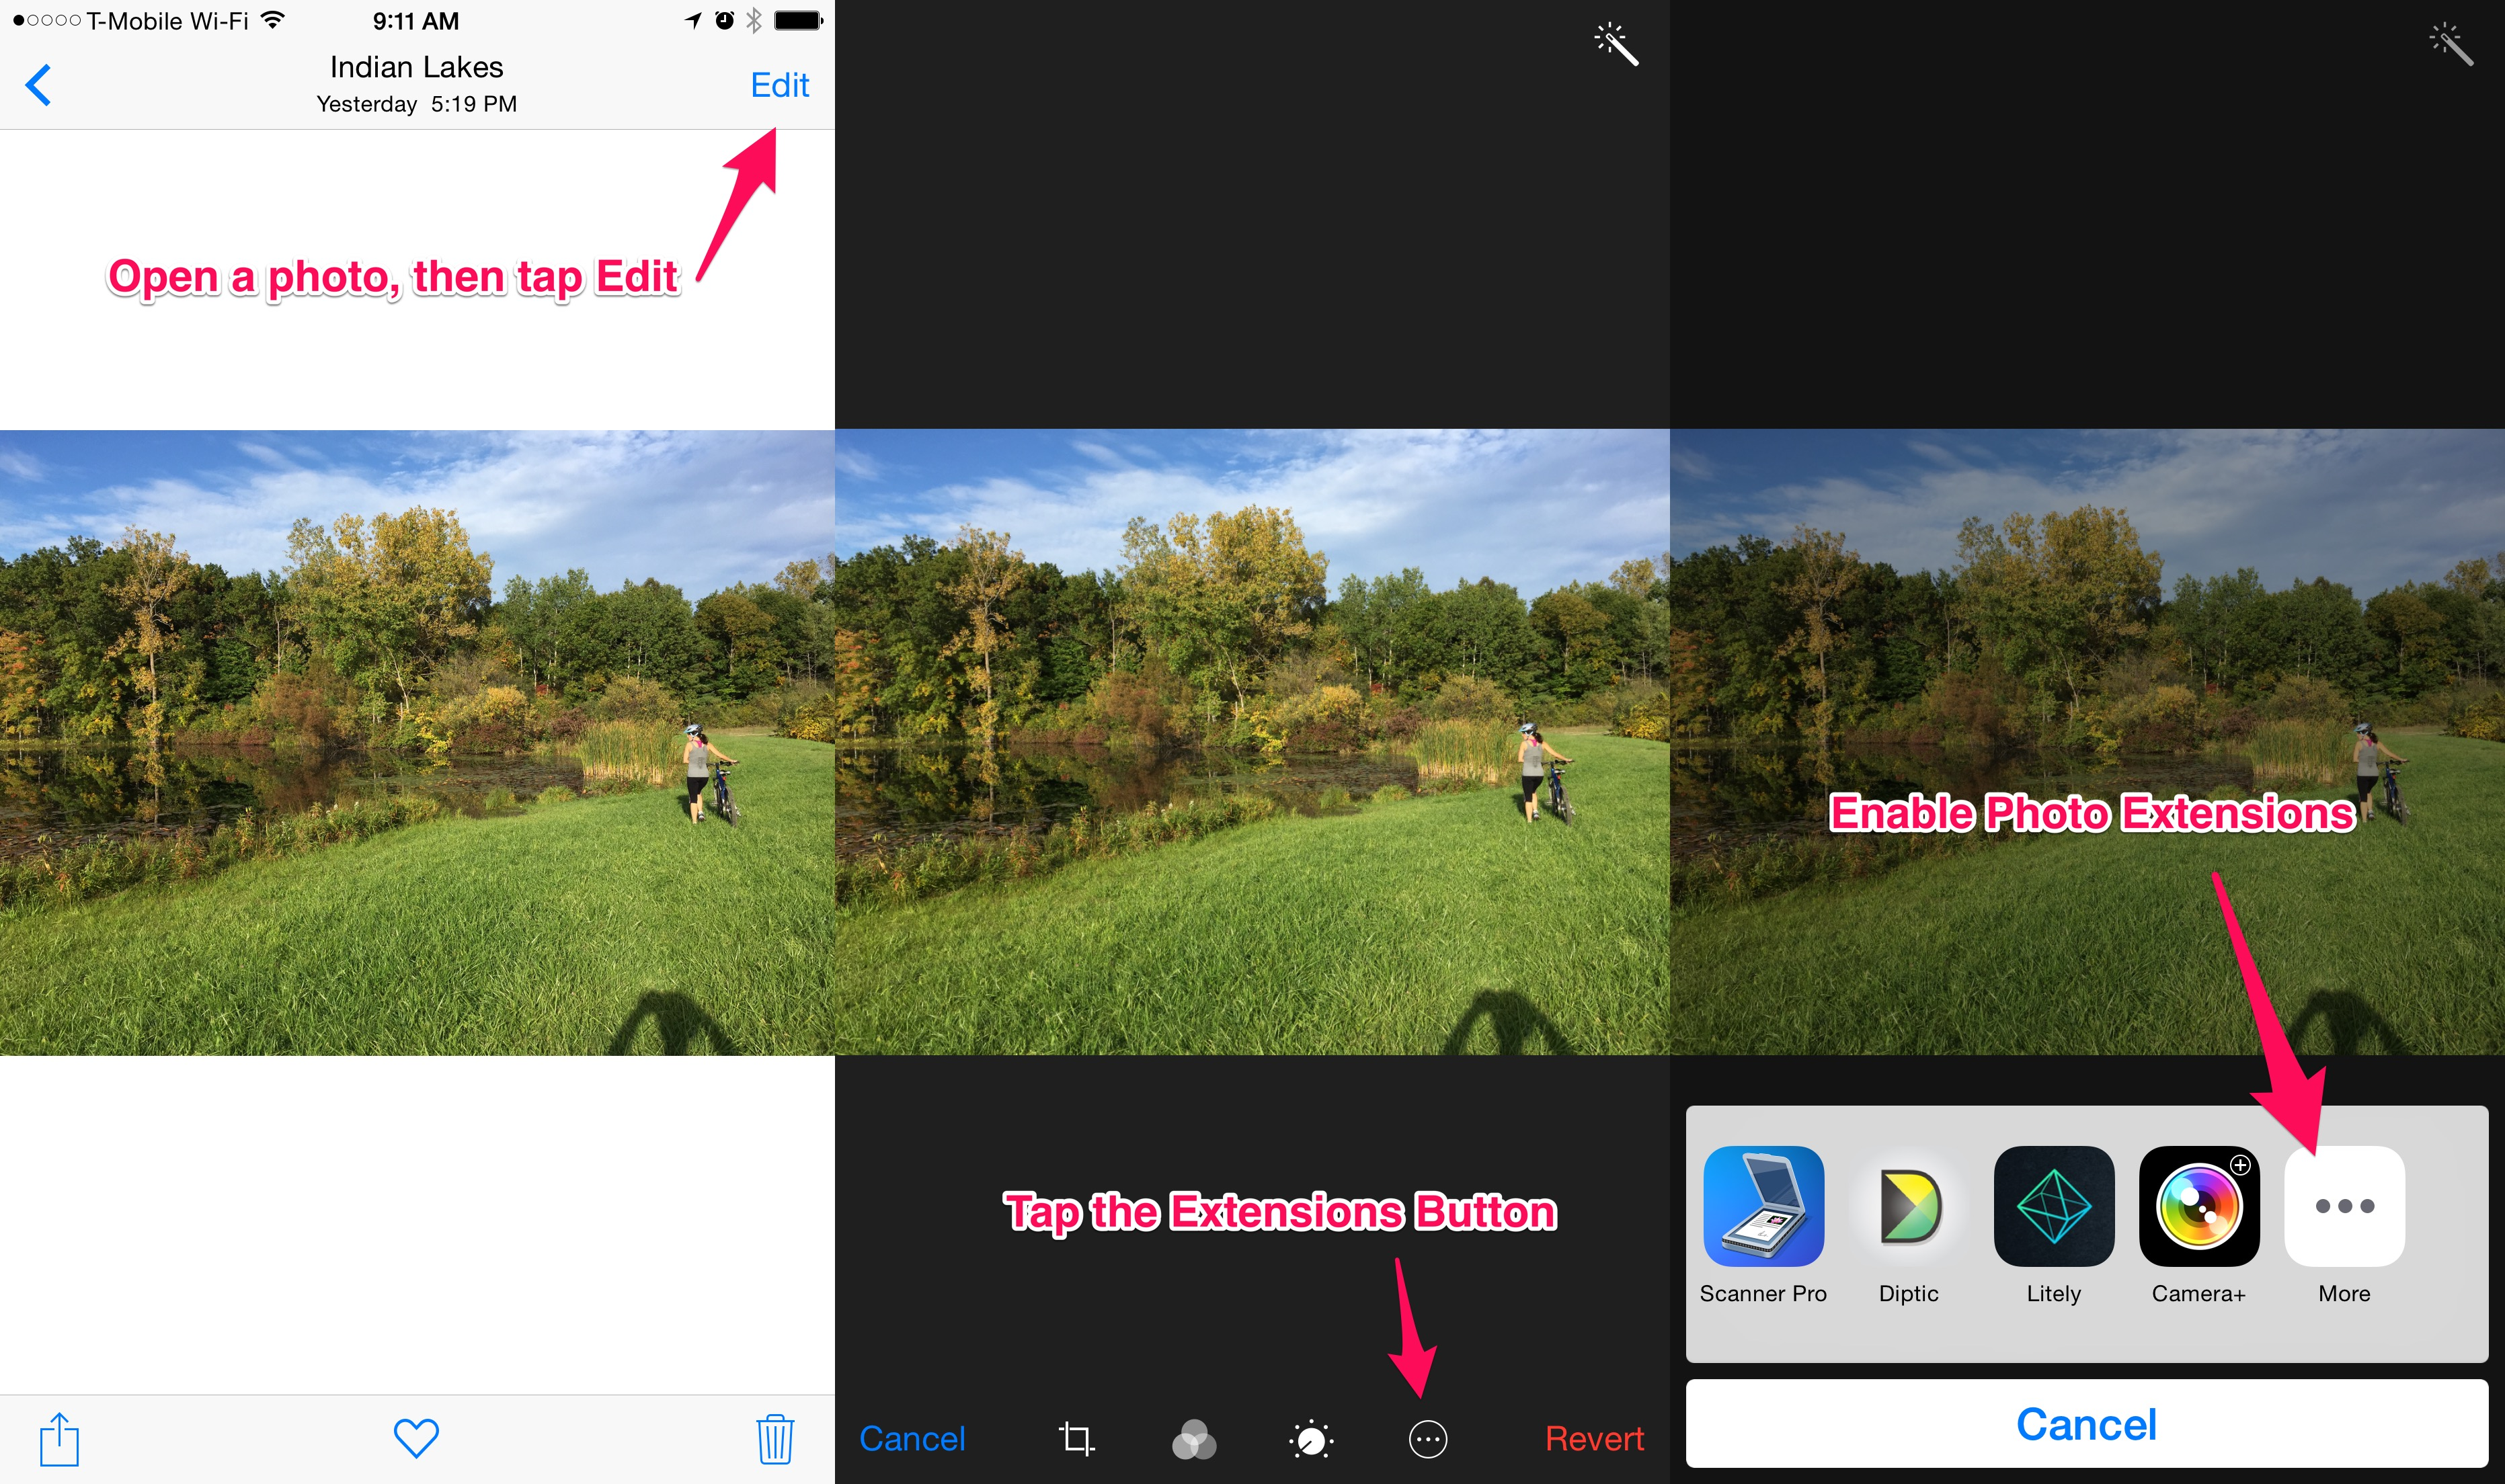 Extensions can be enabled in the default Photos app with the edit button.